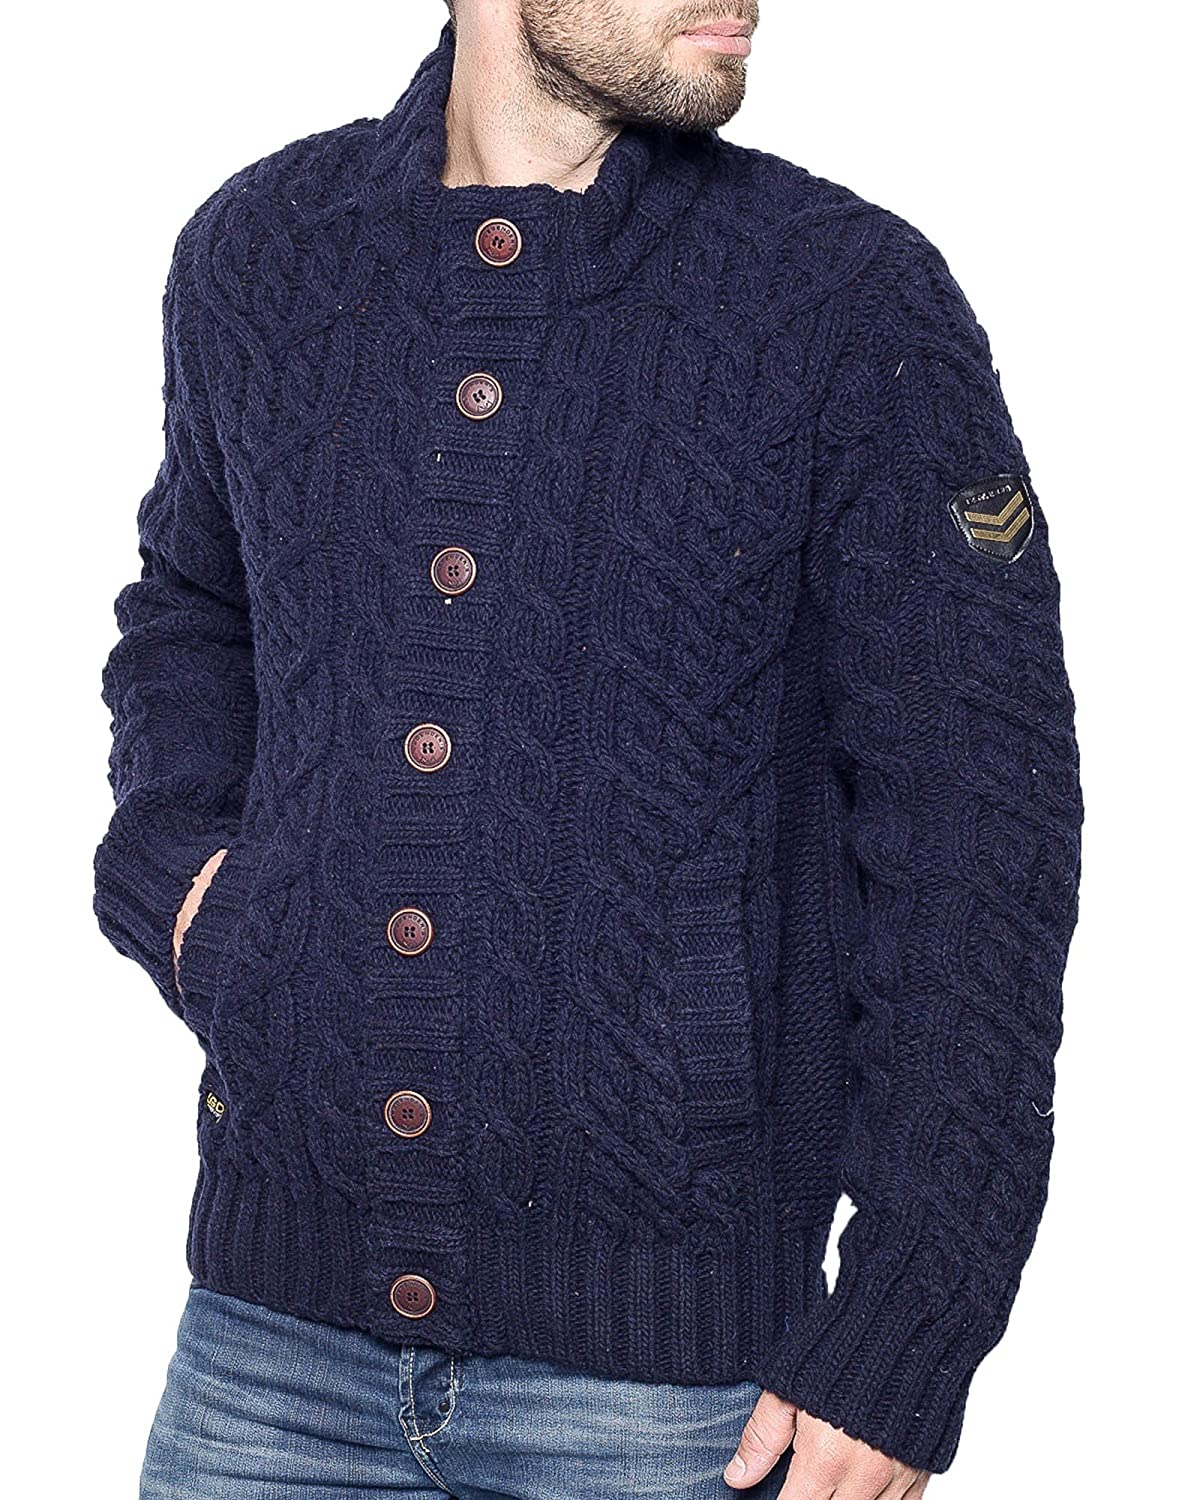 Legenders - vest buttoned navy man